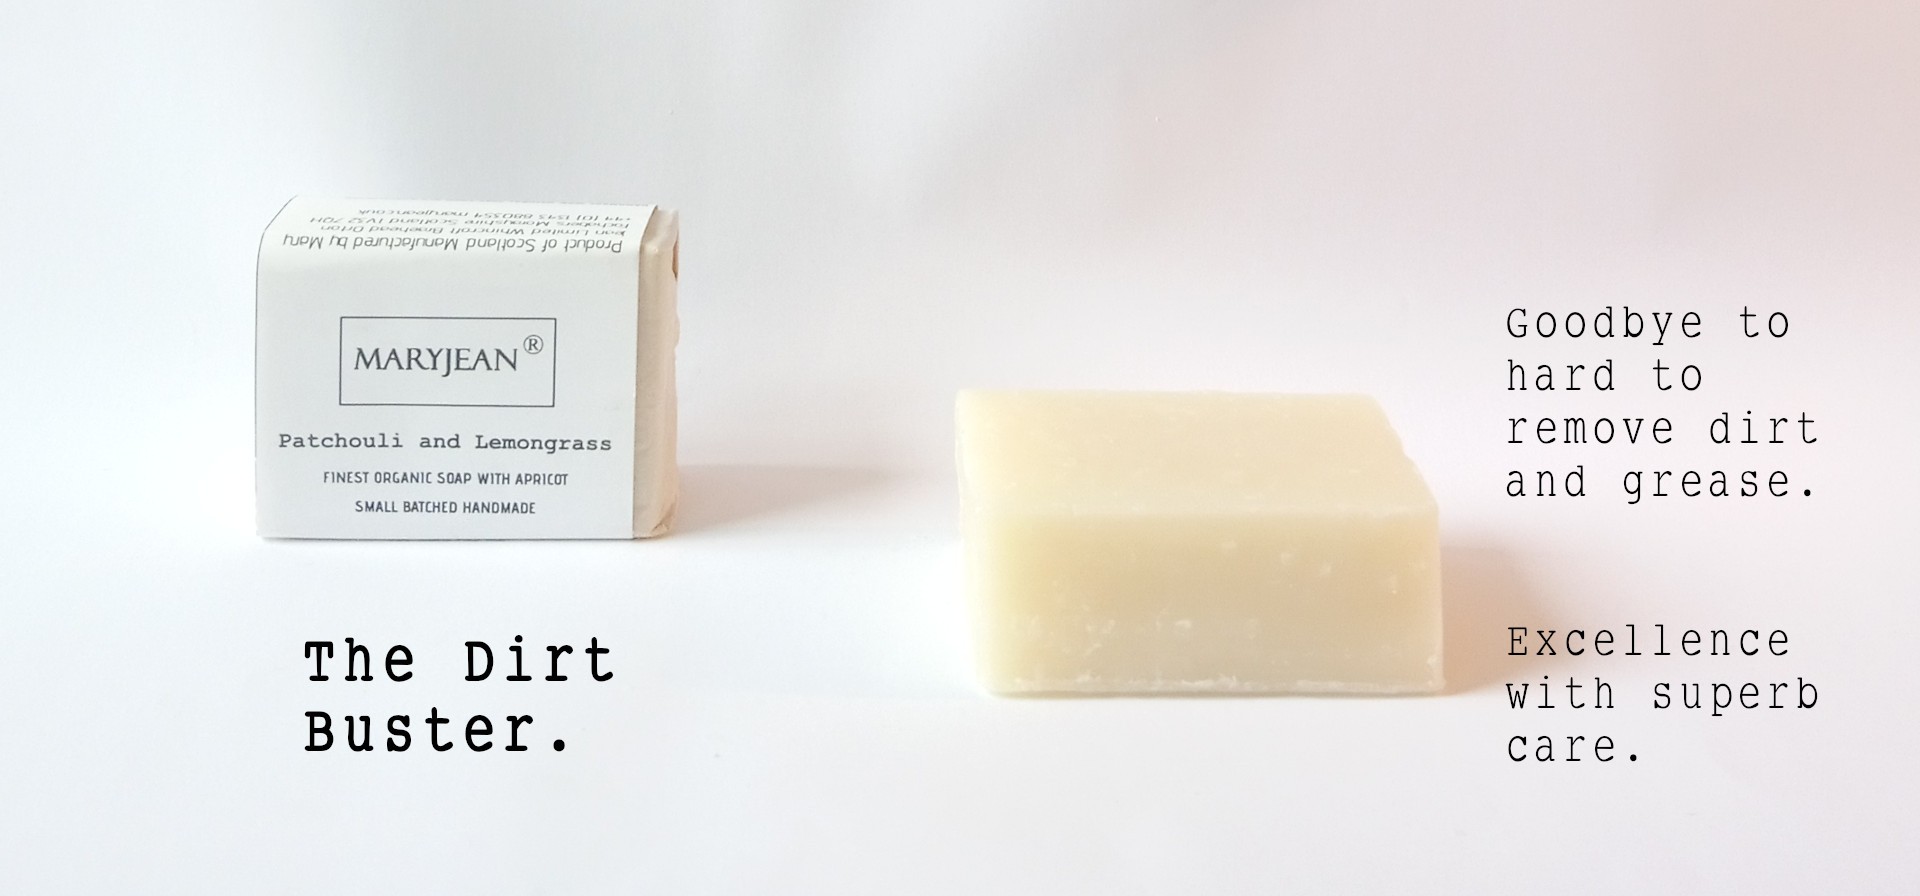 Travel Size Organic Scottish Patchouli Lemongrass Exfoliating Hand Scrub Soap Handmade With Apricot en_GB